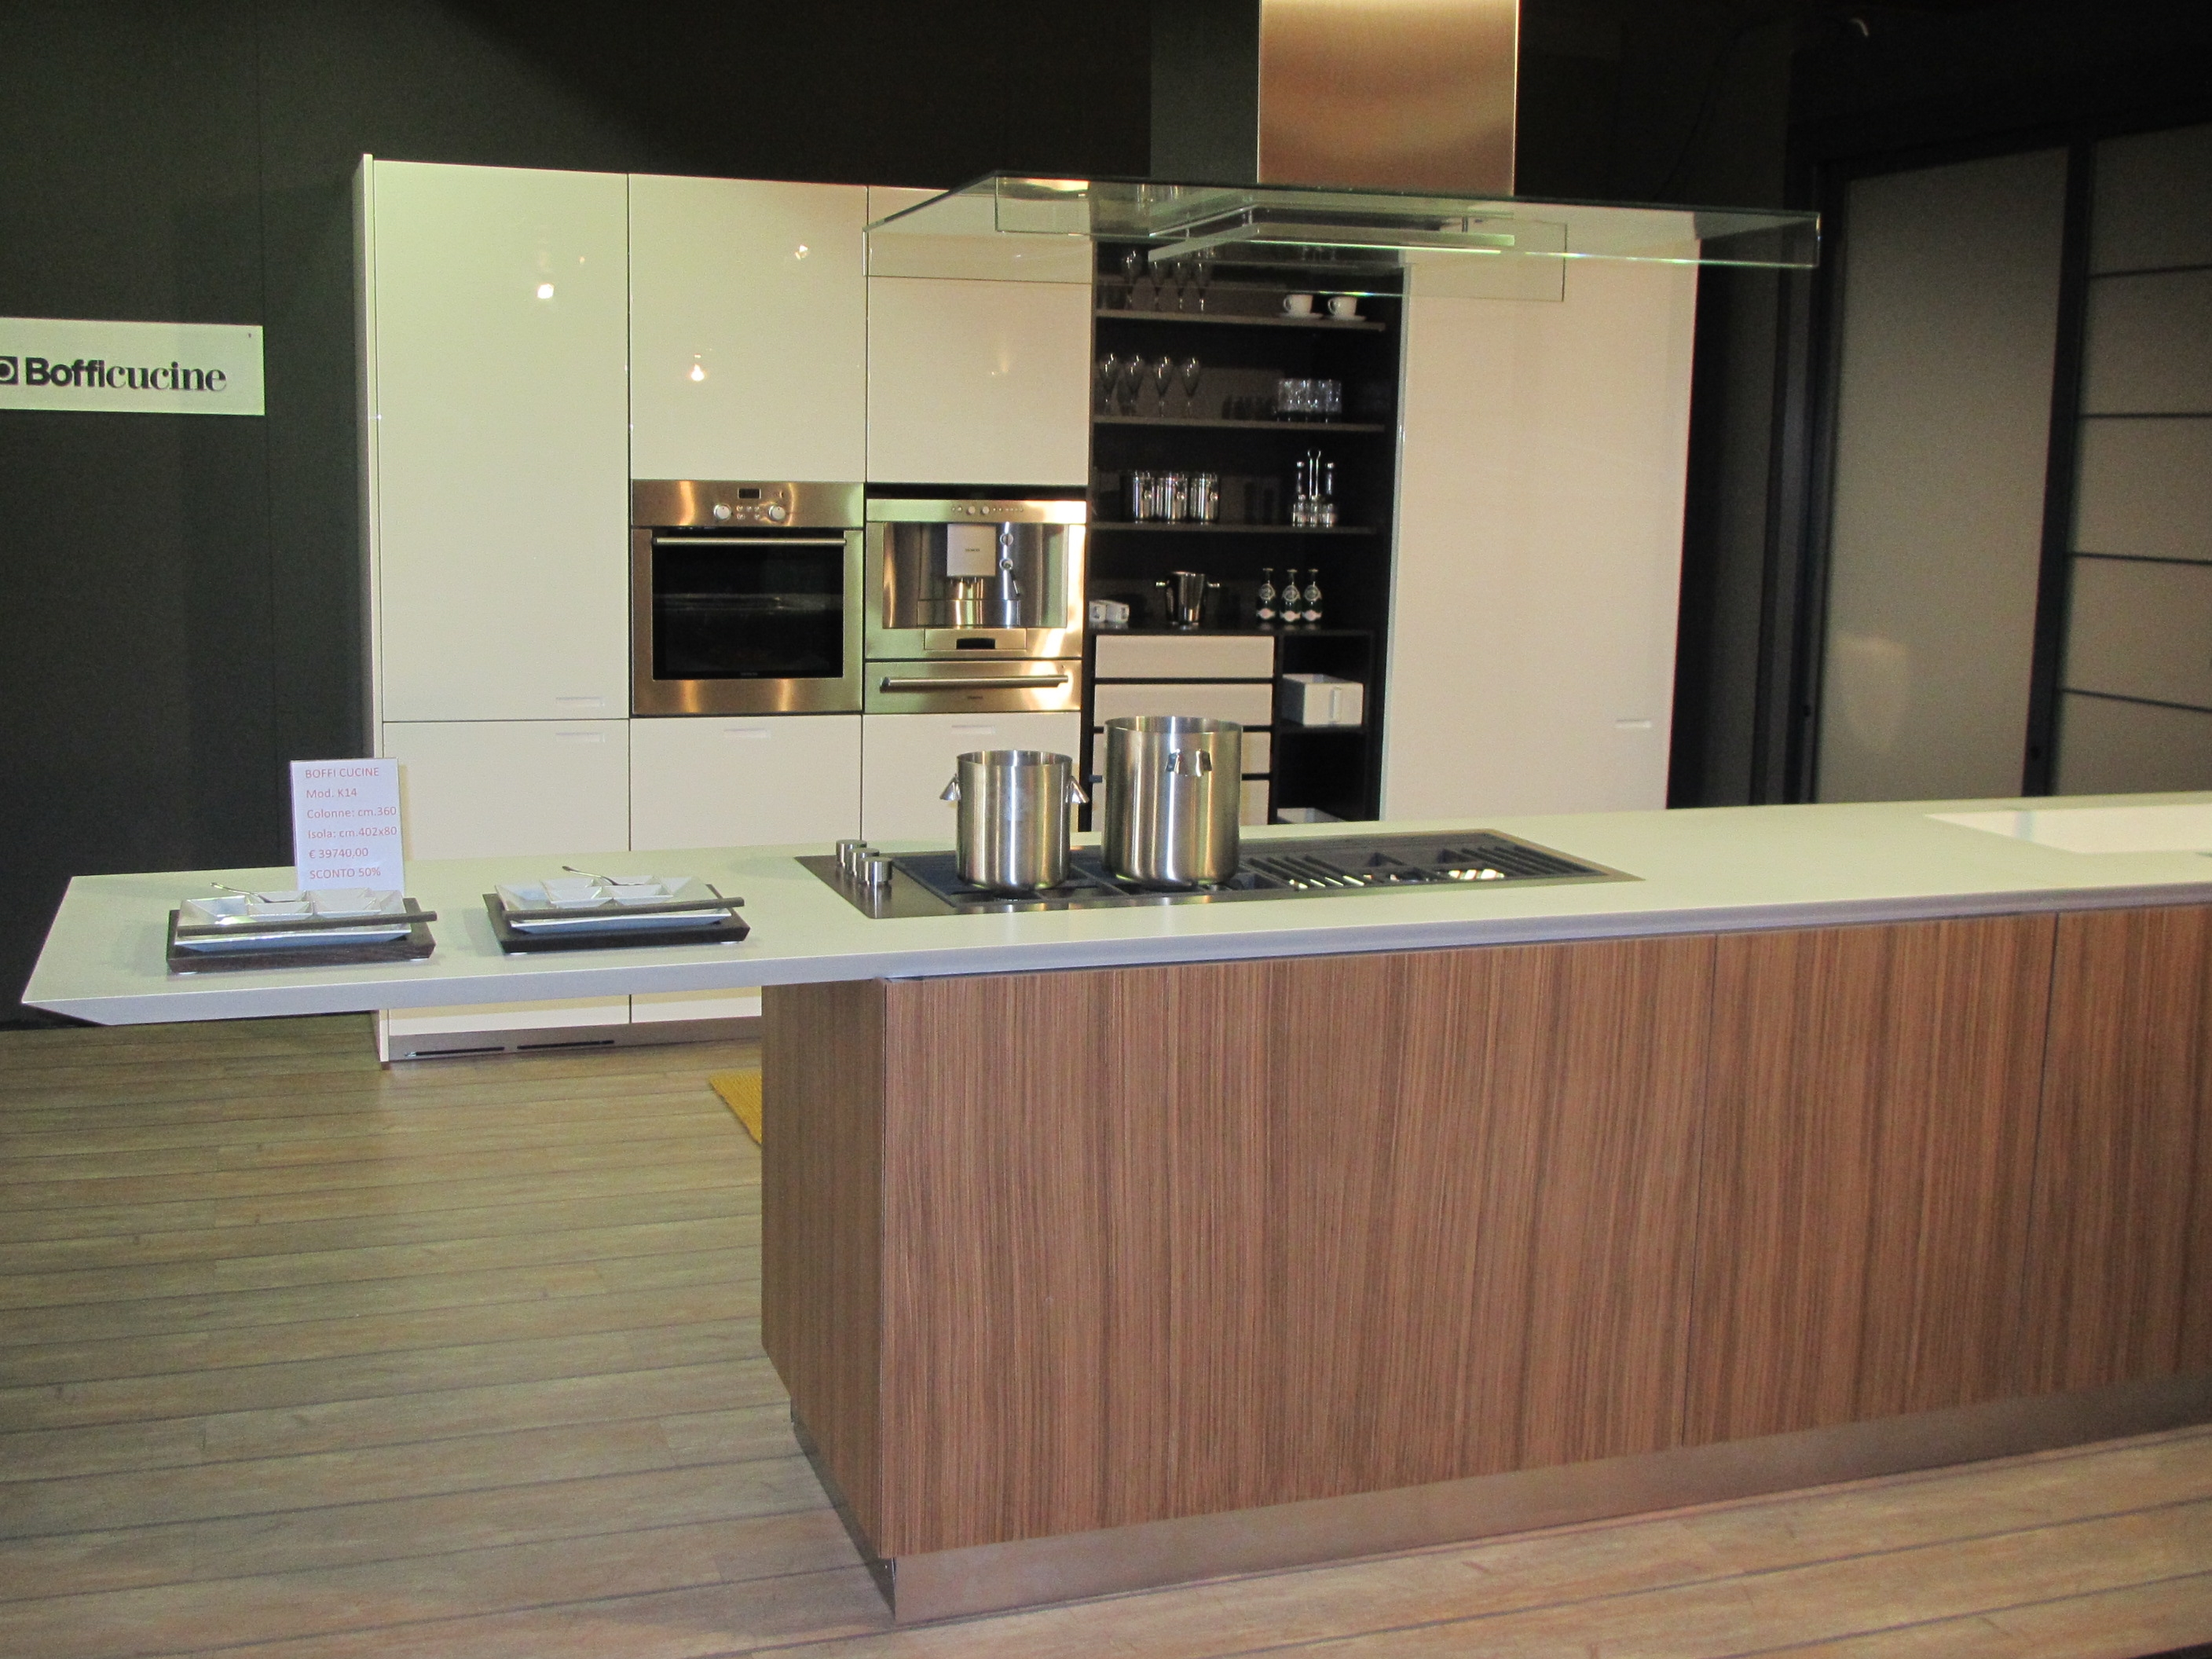 Offerte Cucine Boffi. Great Gallery Of Cucine Boffi In Offerta ...